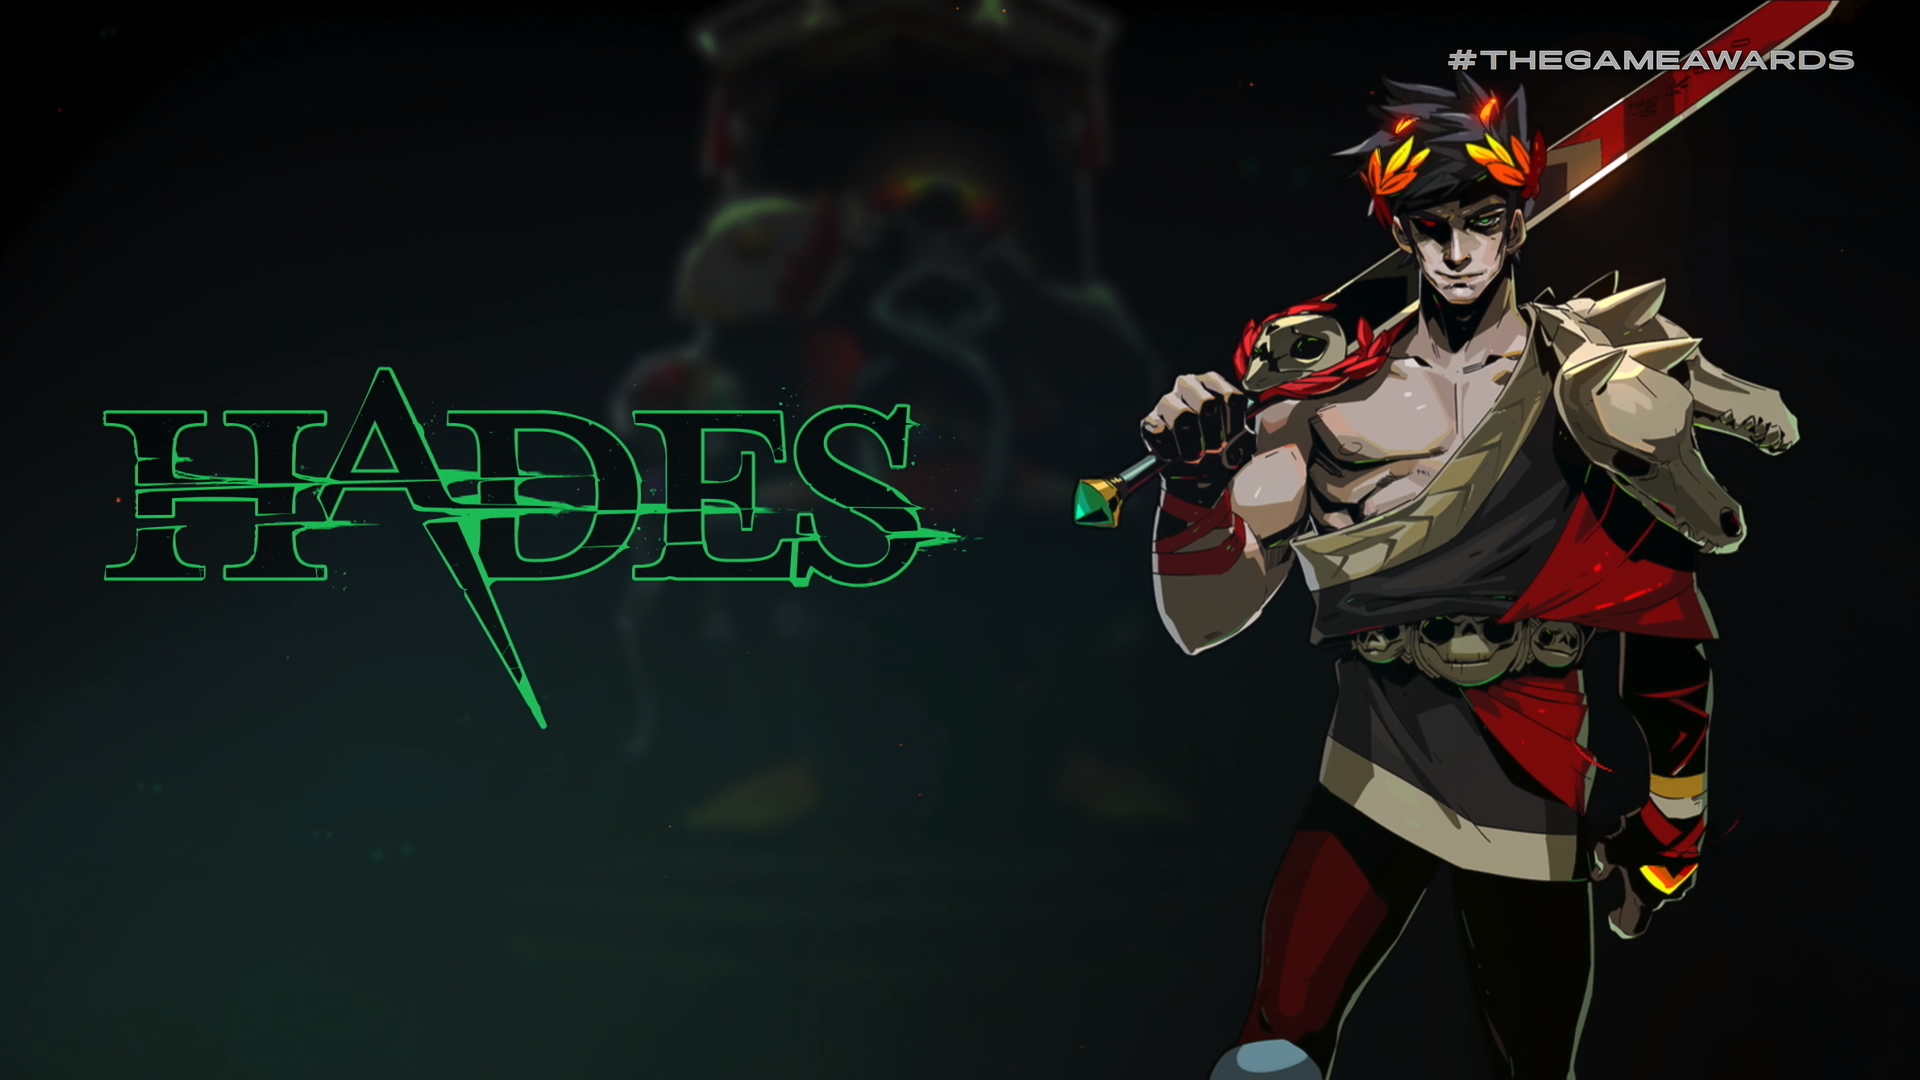 Supergiant Games' New Title, Hades, Available Now on Epic